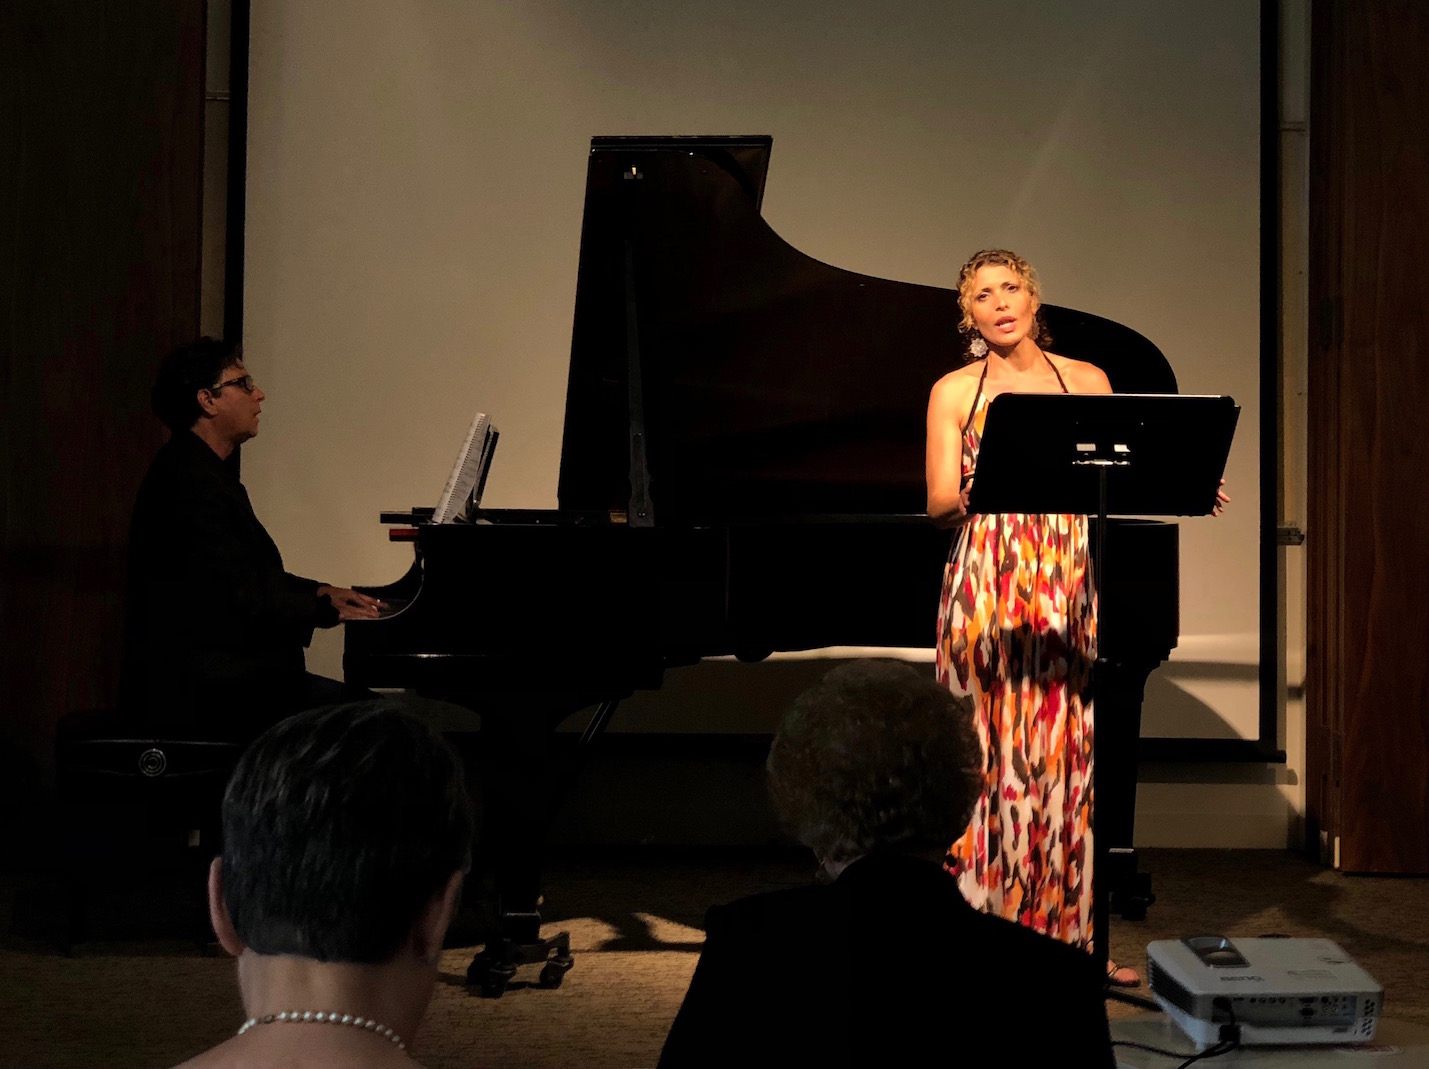 Mezzo Soprano Geeta Novotny and Composer/Pianist Russell Steinberg perform Rucksack at the NACUSA LA 85th Anniversary Concert, Brand Library, Pasadena, July 21, 2018